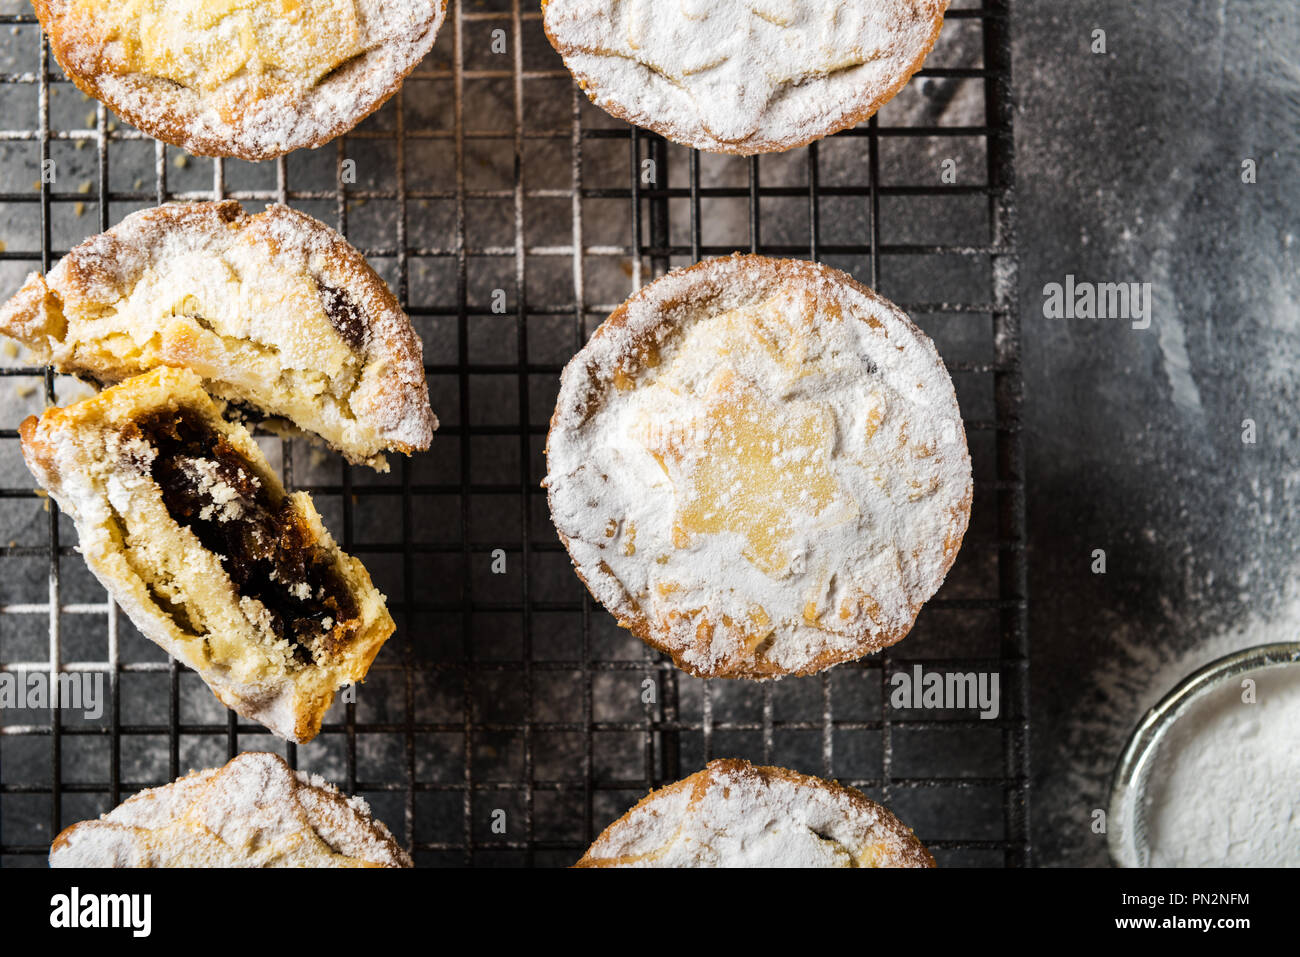 Mince pies, traditional christmas food made from all butter shortcrust pastry pies deep filled with plump vine fruits, such as cranberries, clementine - Stock Image